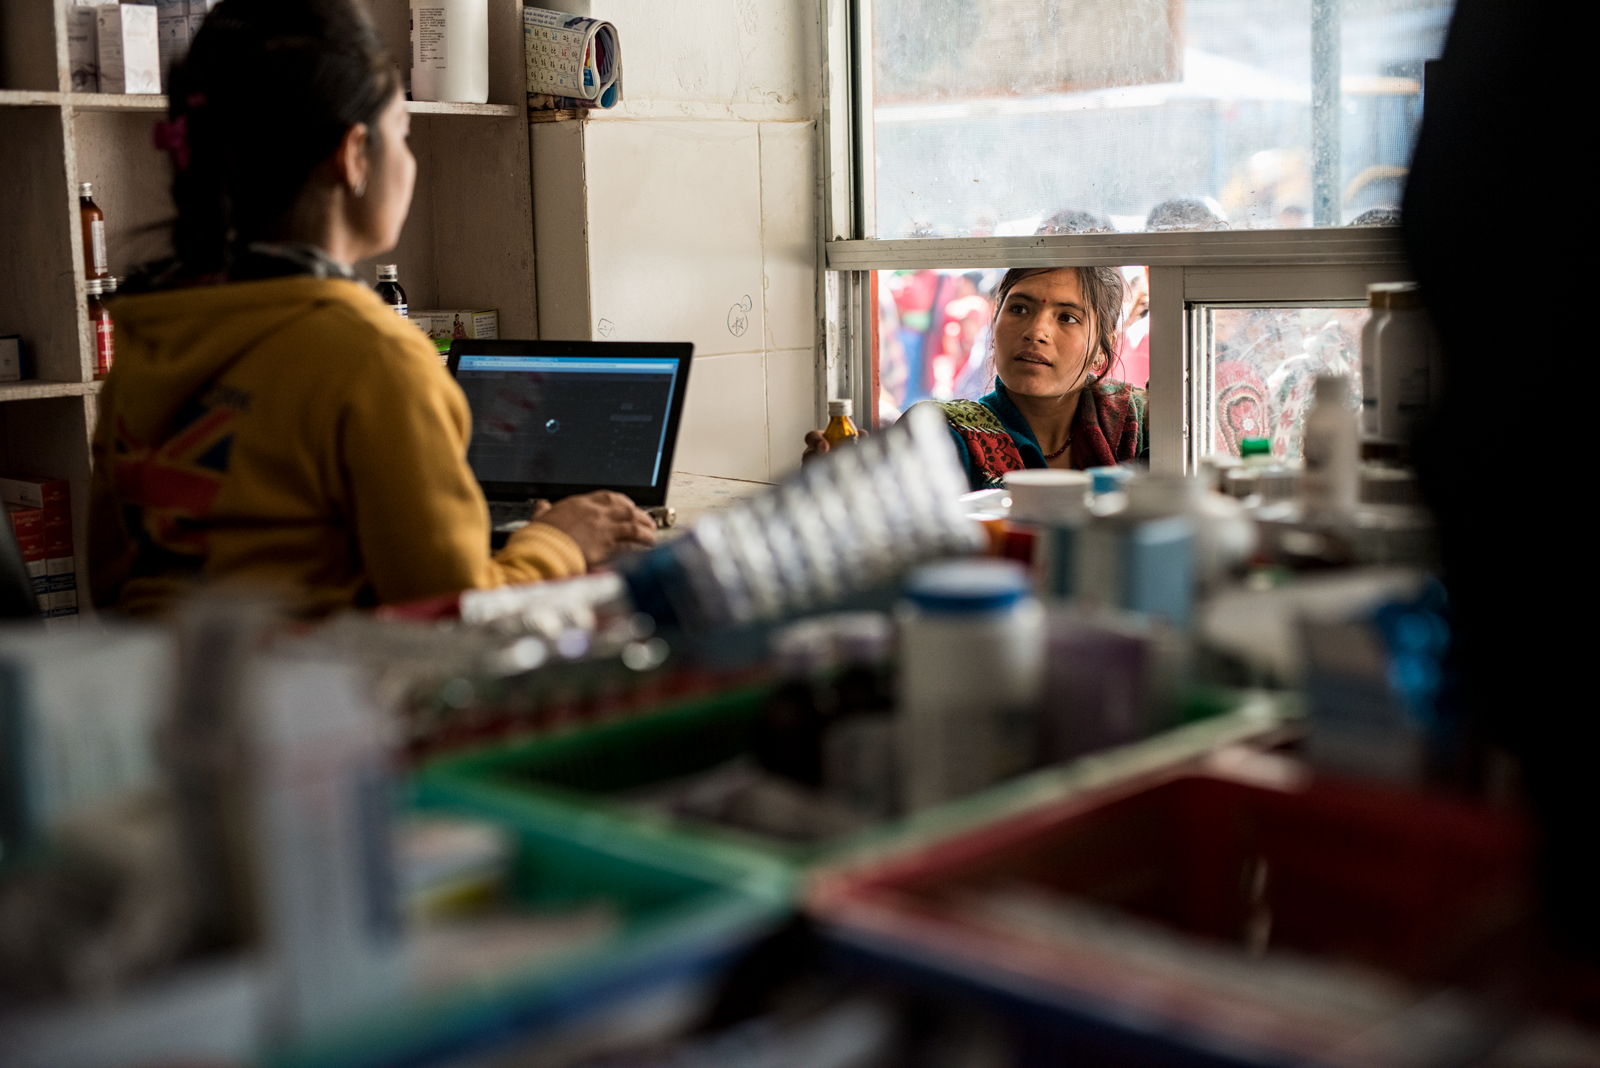 View inside a Nepalese pharmacy window, looking outside. A young woman wearing a teal dress and colored scarf stands outside the sliding window and speaks to a female techniction wearing a yellow hoodie in front of a tablet screen.